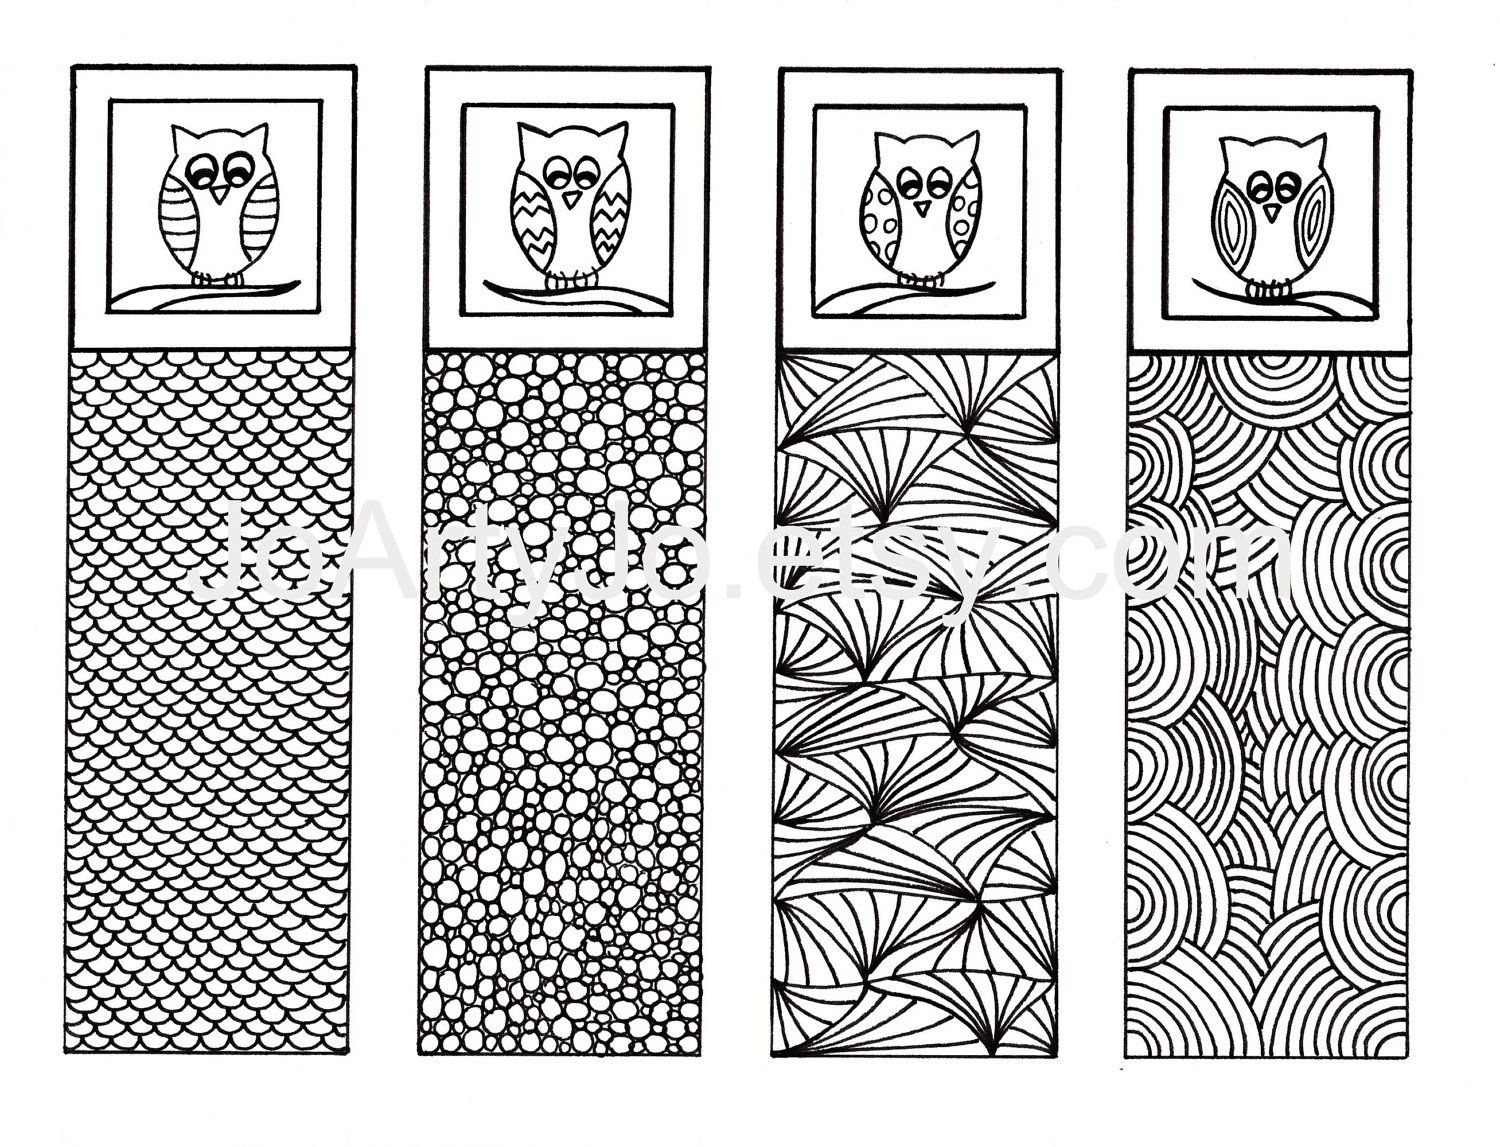 Zen doodle colour - Printable Bookmarks Owl Zendoodle Art Zentangle Inspired Printable Coloring Digital Download Sheet